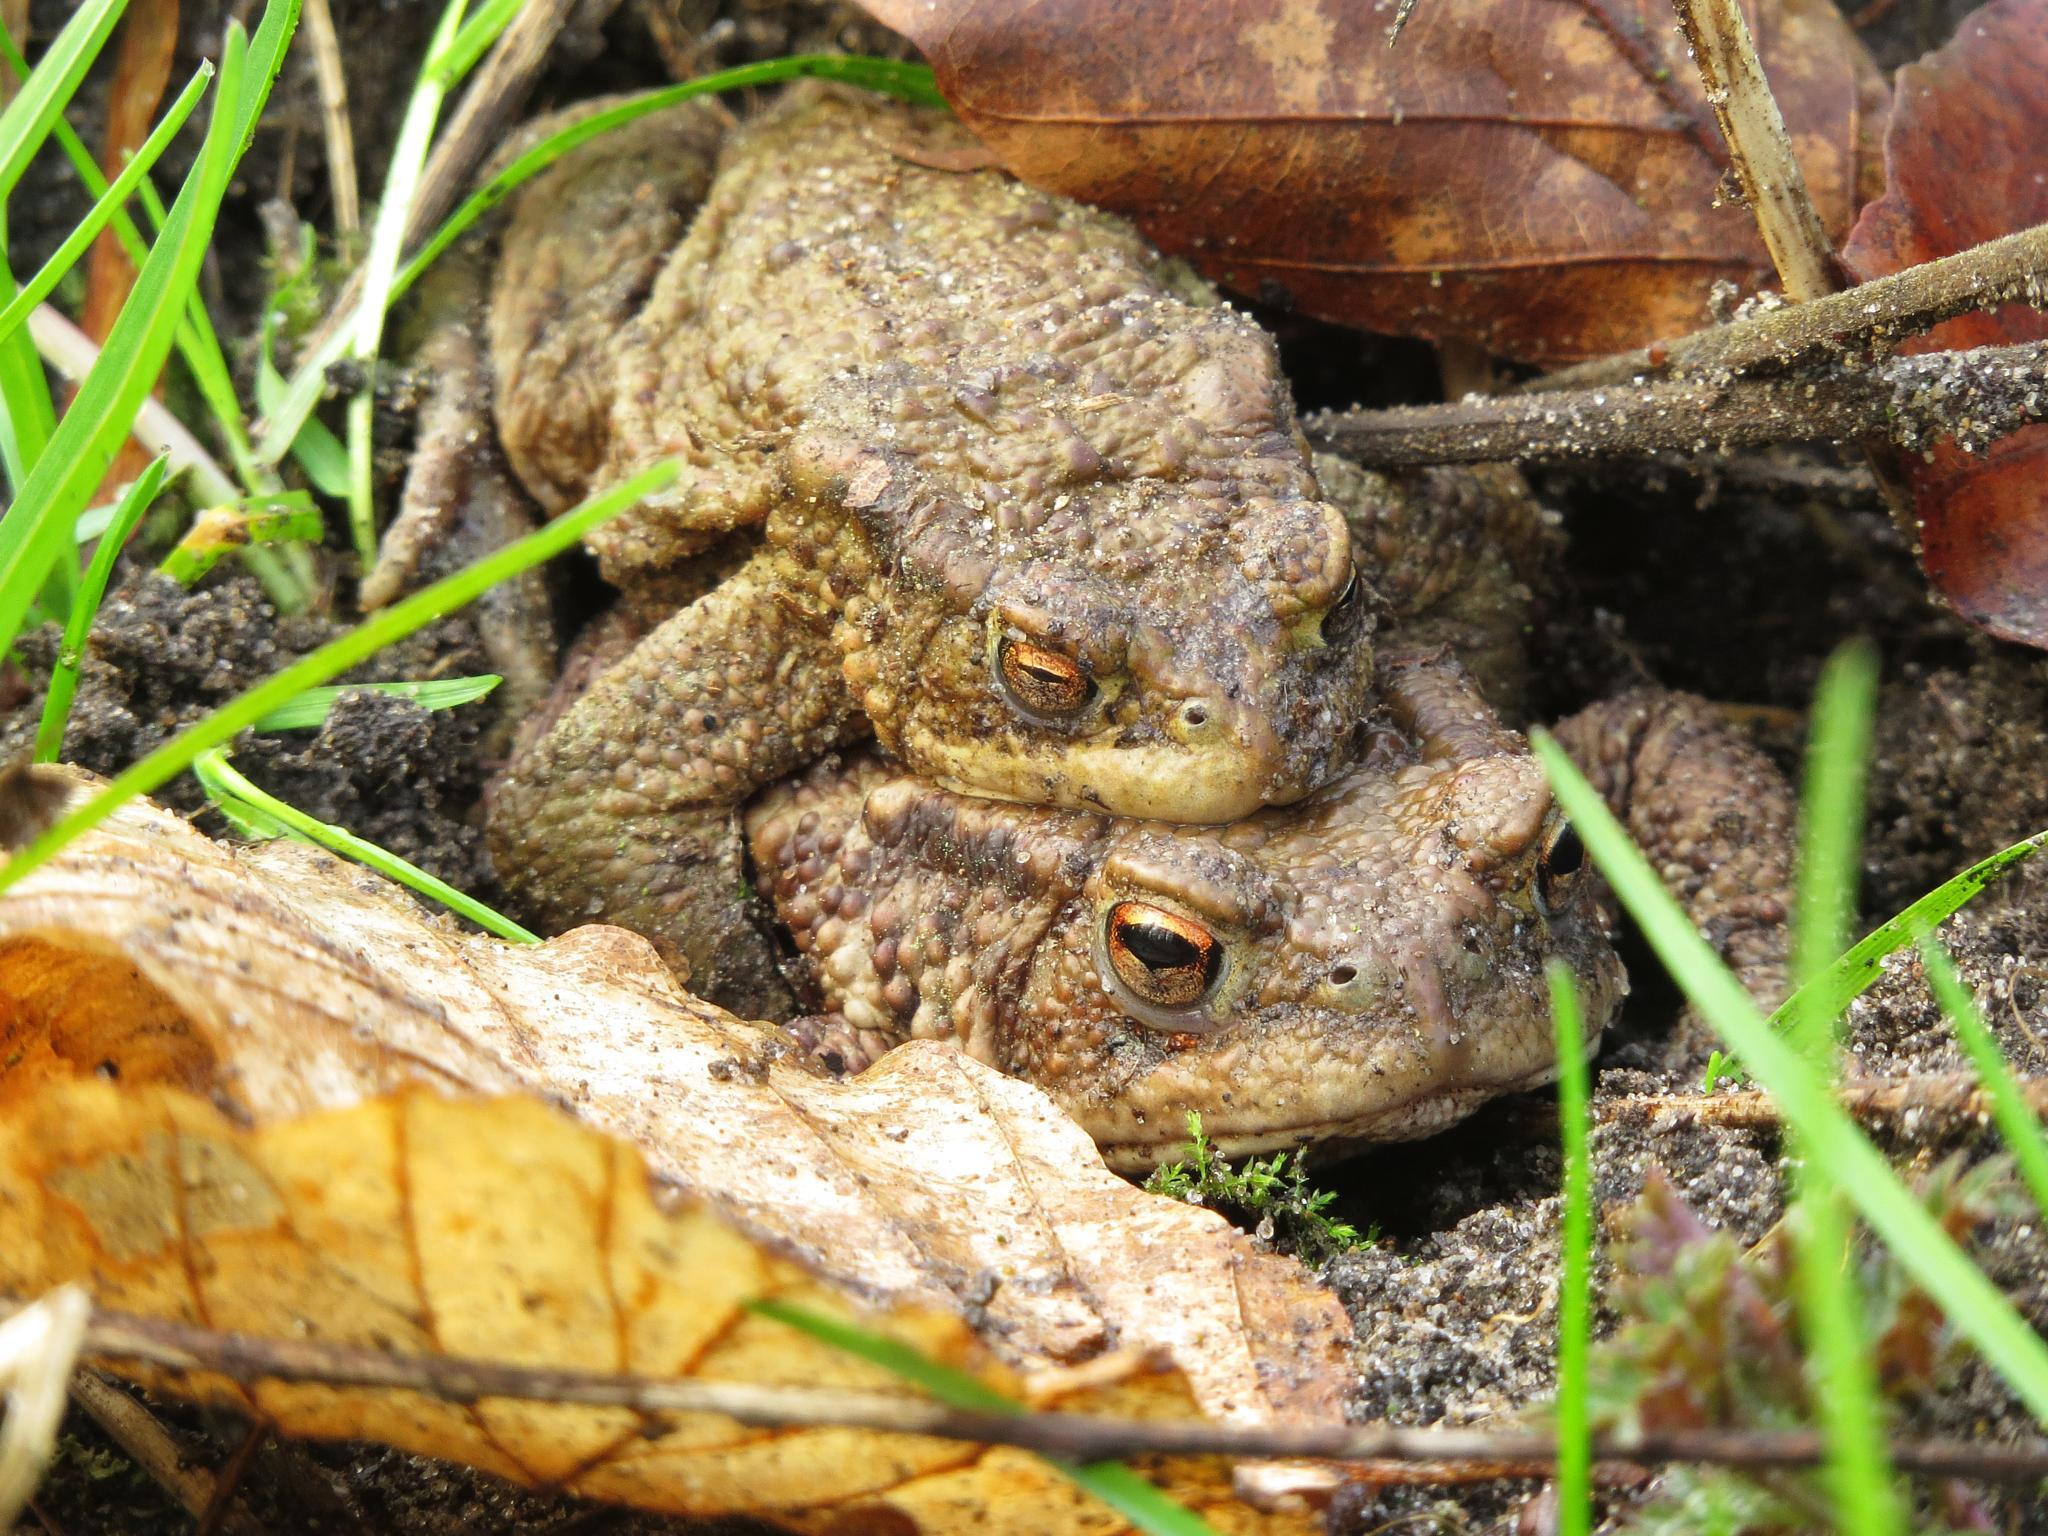 Toads by Rob Boon